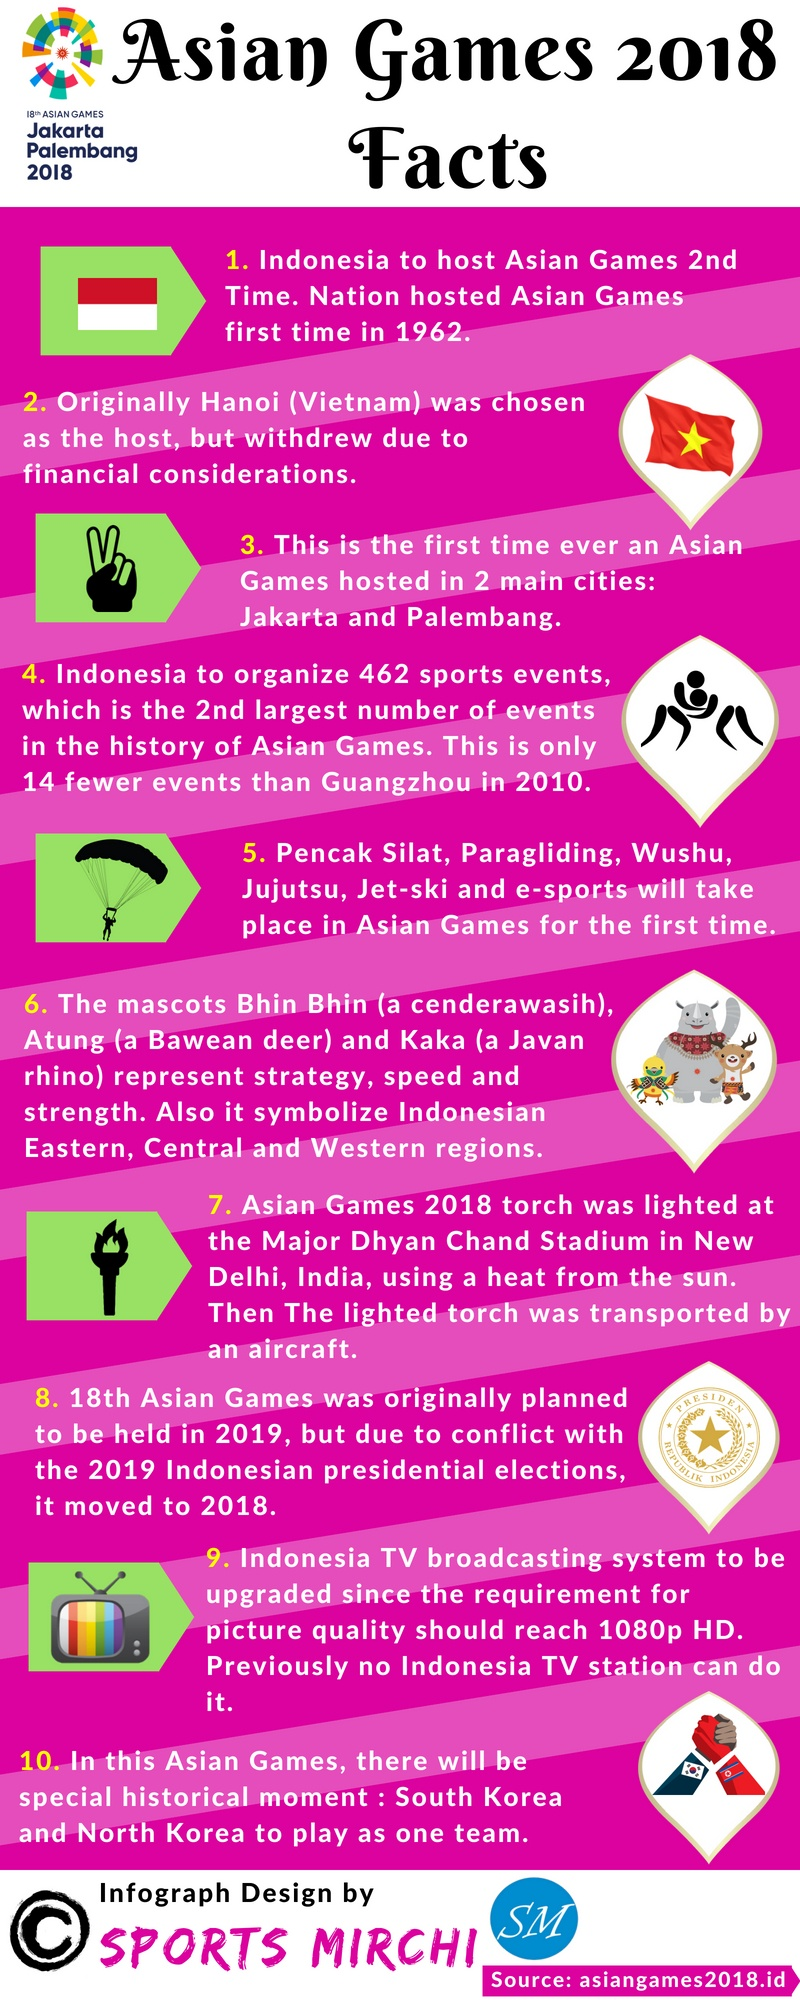 There are several interesting stories and facts about 2018 Asian Games but  I like the introduction of esports and other games like paragliding. b2b24d127